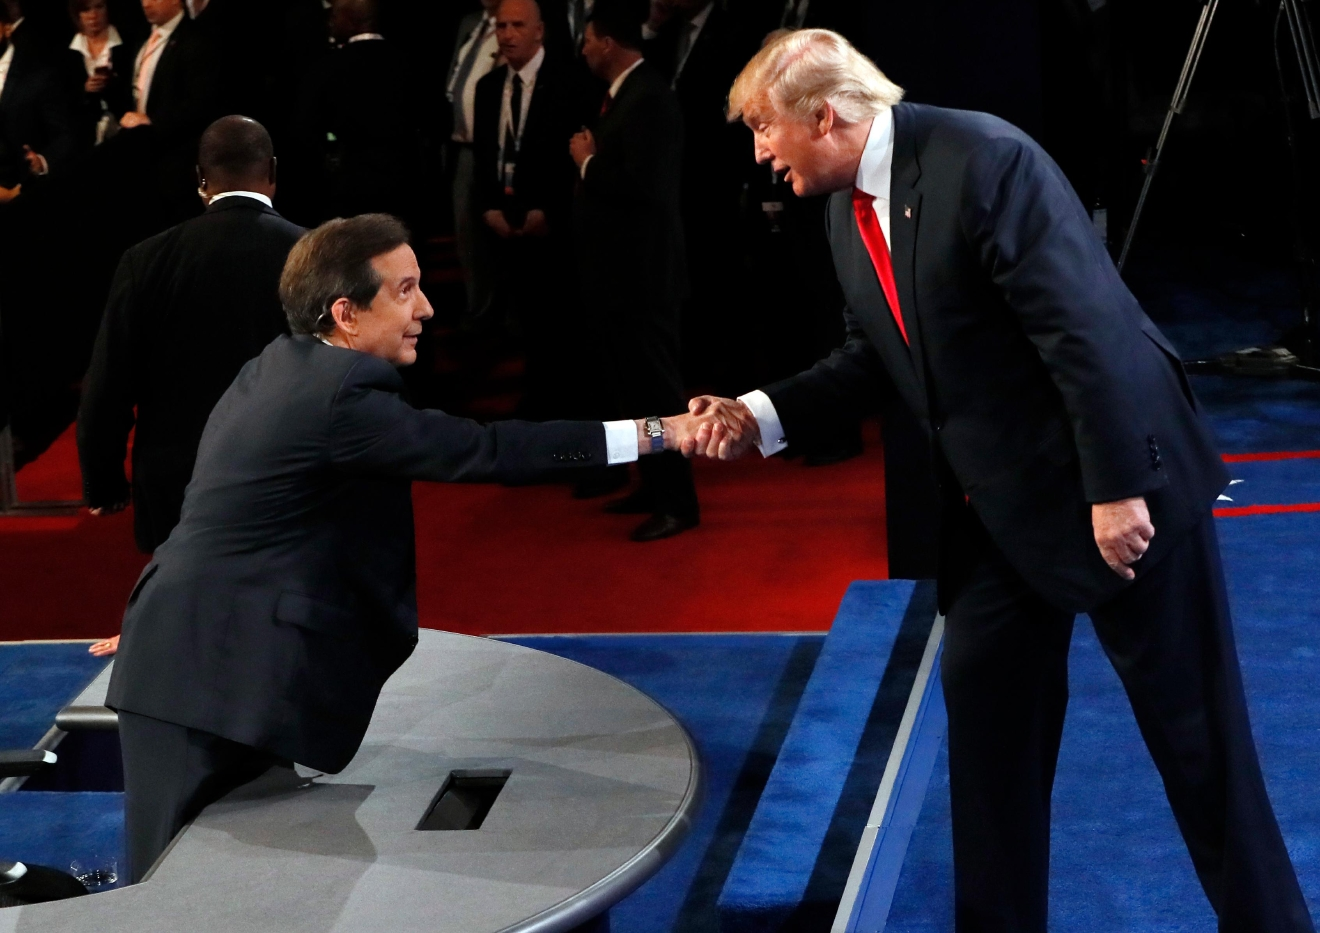 Republican presidential nominee Donald Trump shakes hands with moderator Chris Wallace, of FOX News, after the third presidential debate at UNLV in Las Vegas, Wednesday, Oct. 19, 2016. (Mark Ralston/Pool via AP)